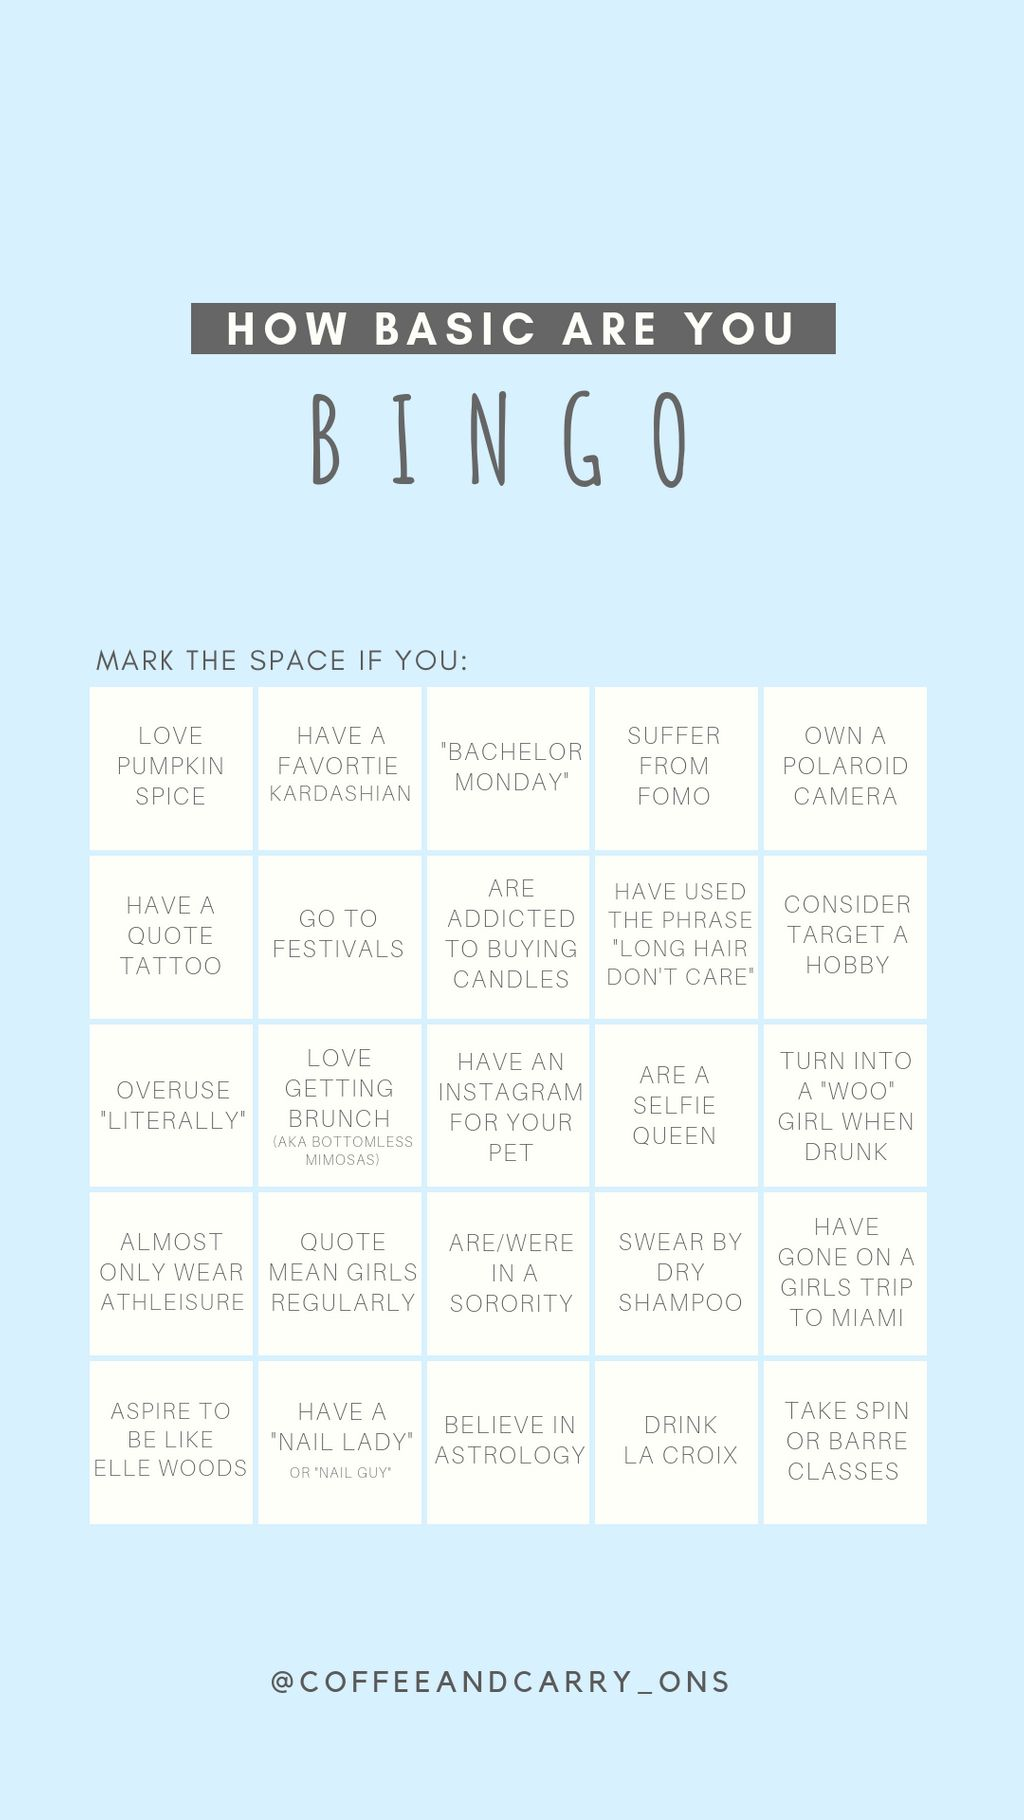 Fun Bingo Game To Post On Your Instagram Story And Tell Your